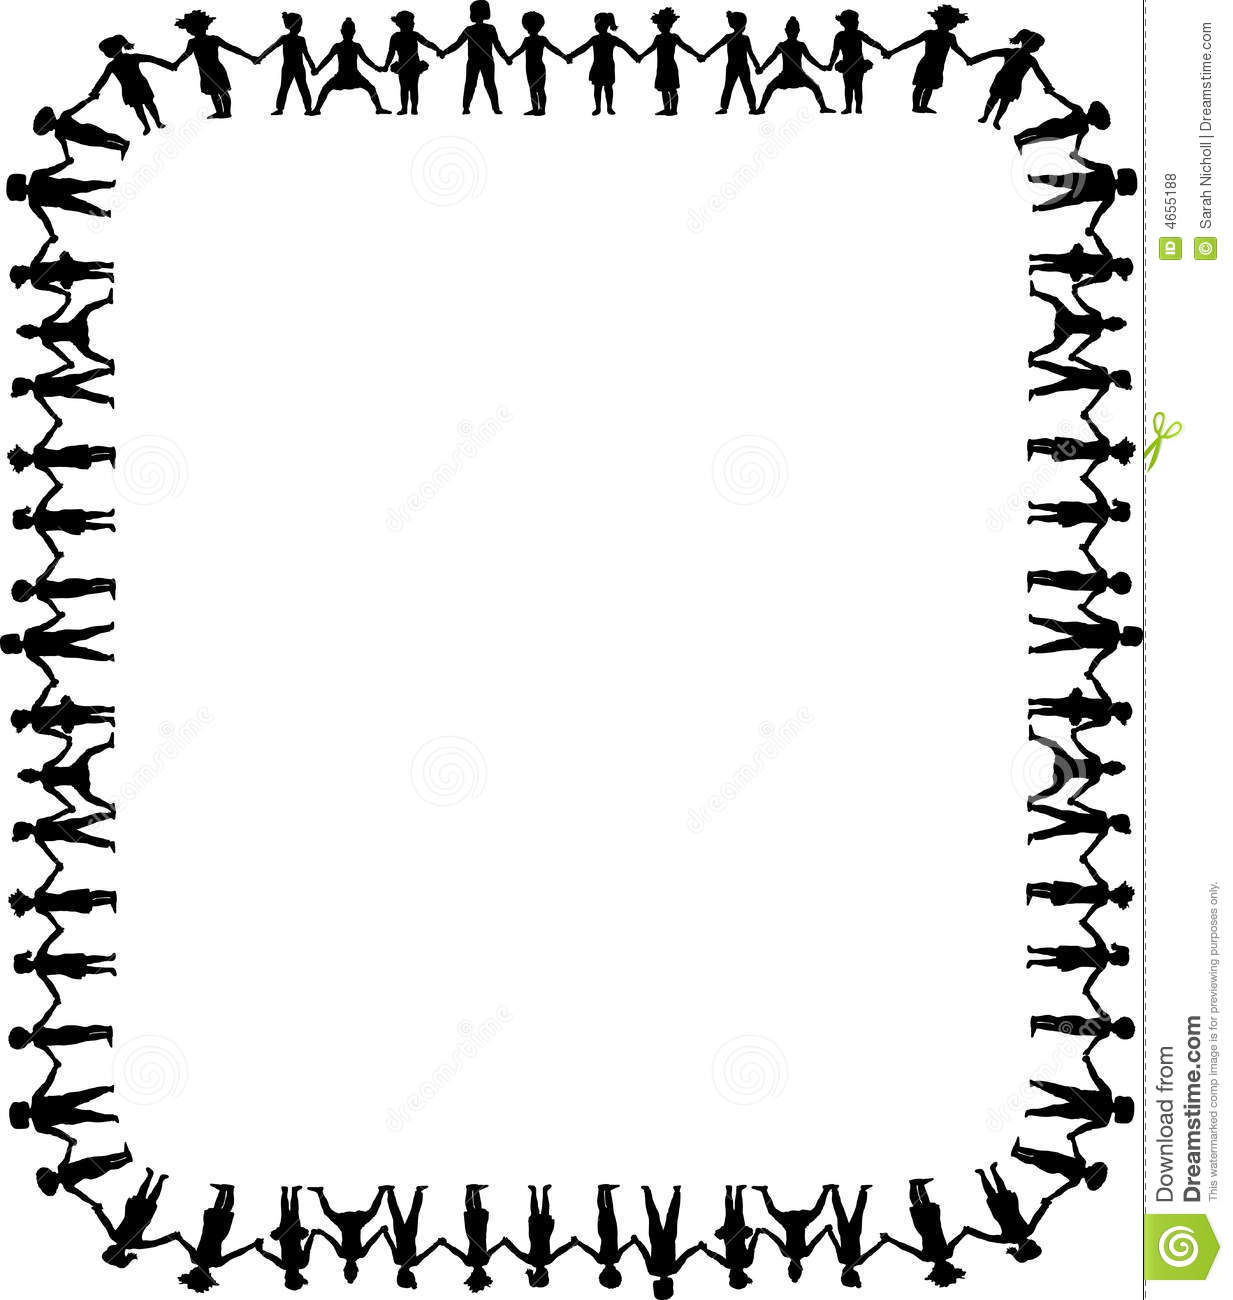 Holding Hands Border 1 Stock Illustration Illustration Of